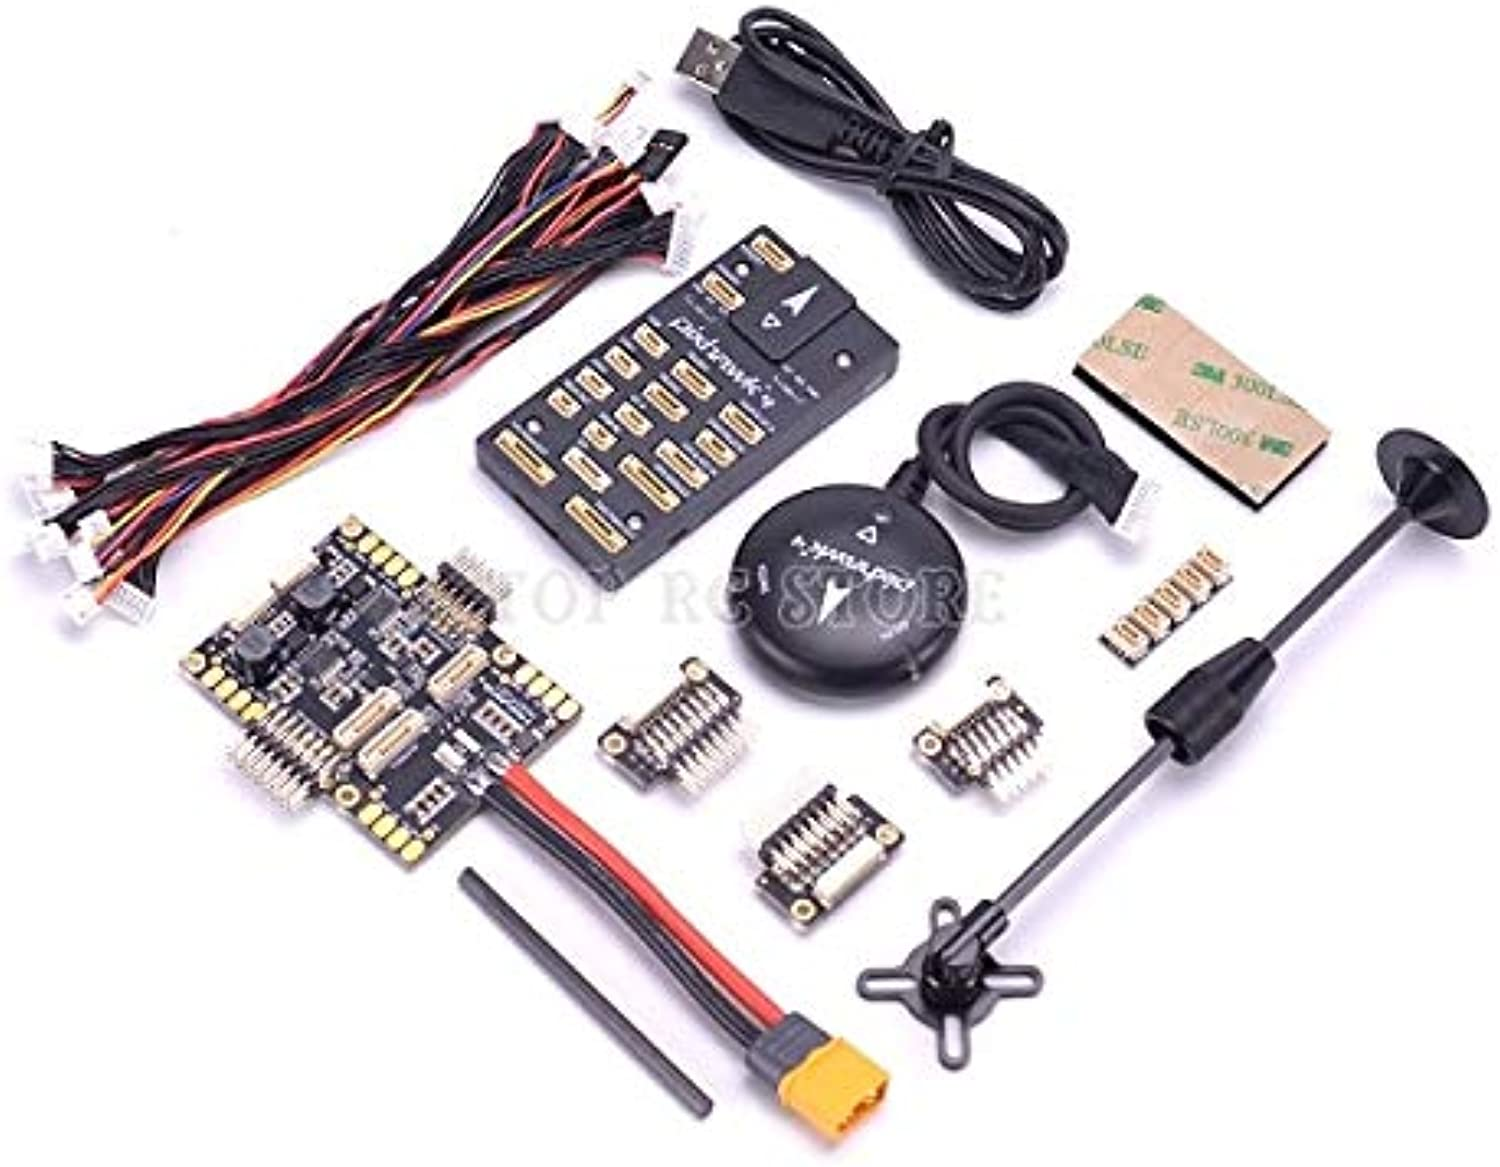 Laliva 4 PX4 Flight Control & GPS Module M8N & PM07 Power Management Board autopilot Combo kit with Plastic Shell  (color  and GPS Set)